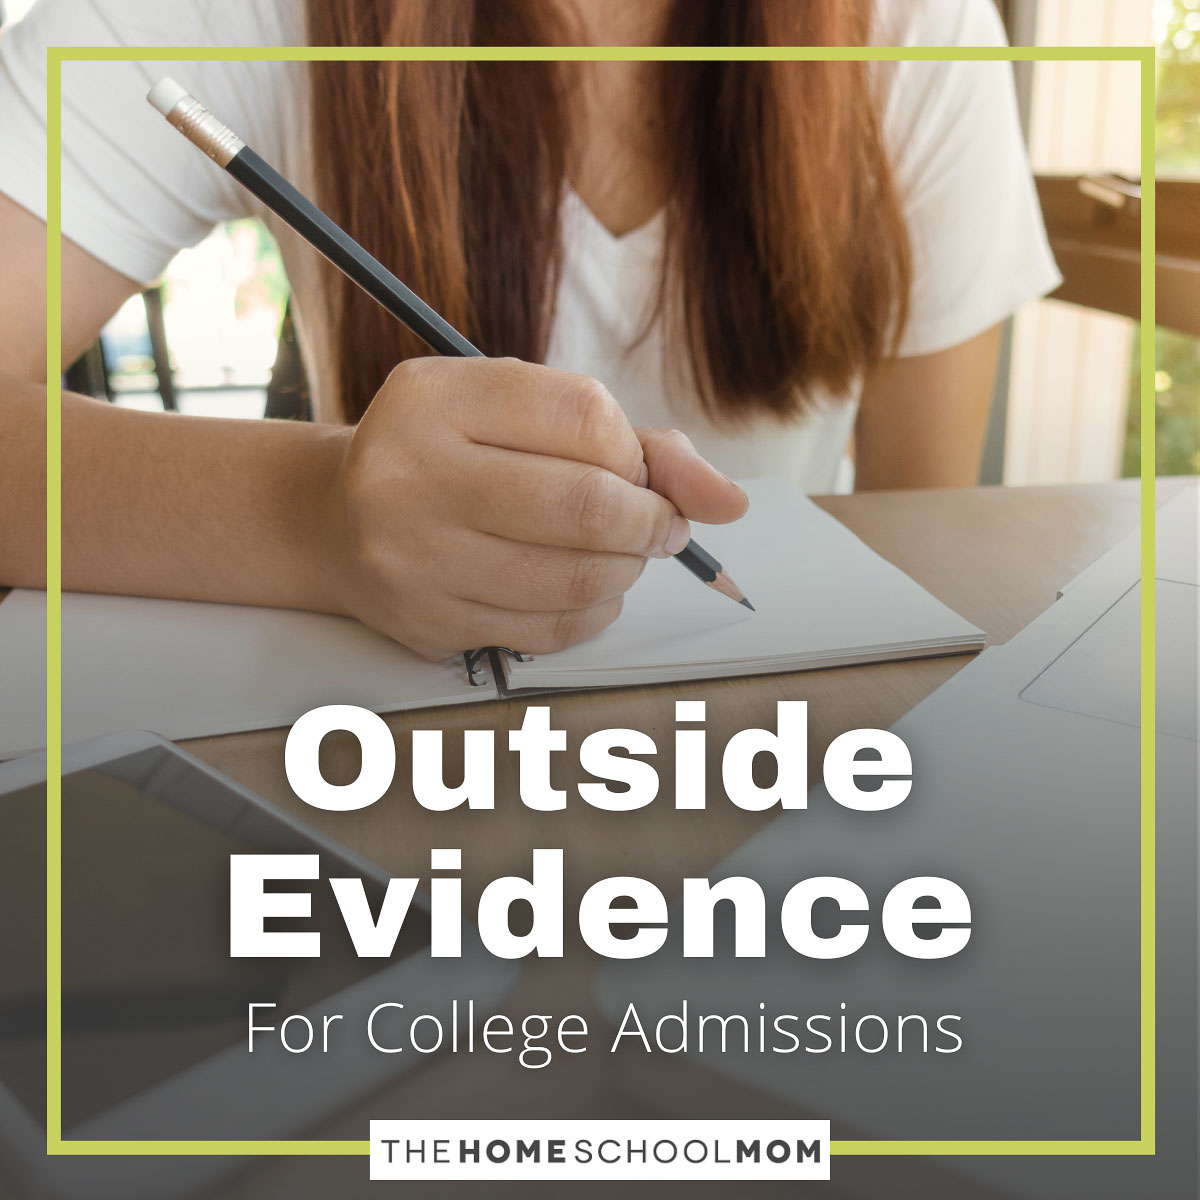 Outside Evidence for College Admissions